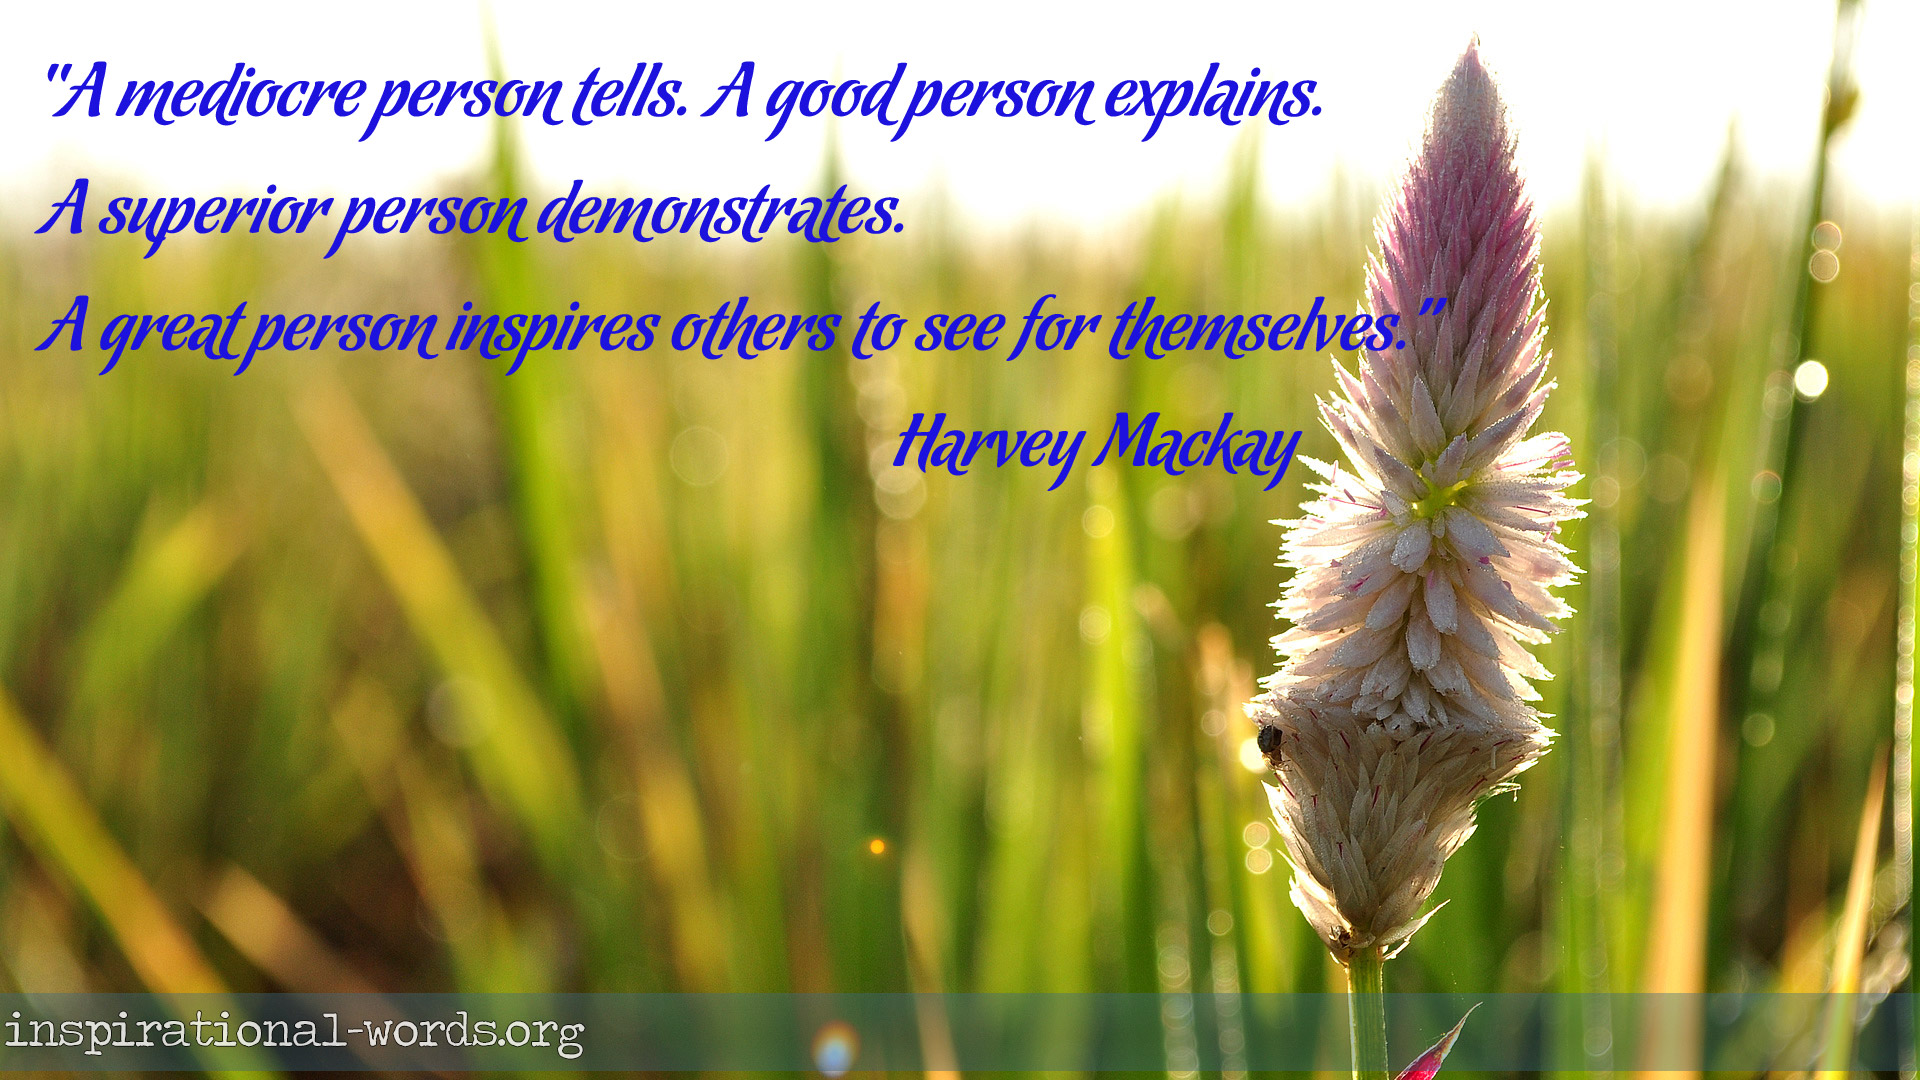 Inspirational Wallpaper Quote by Harvey Mackay